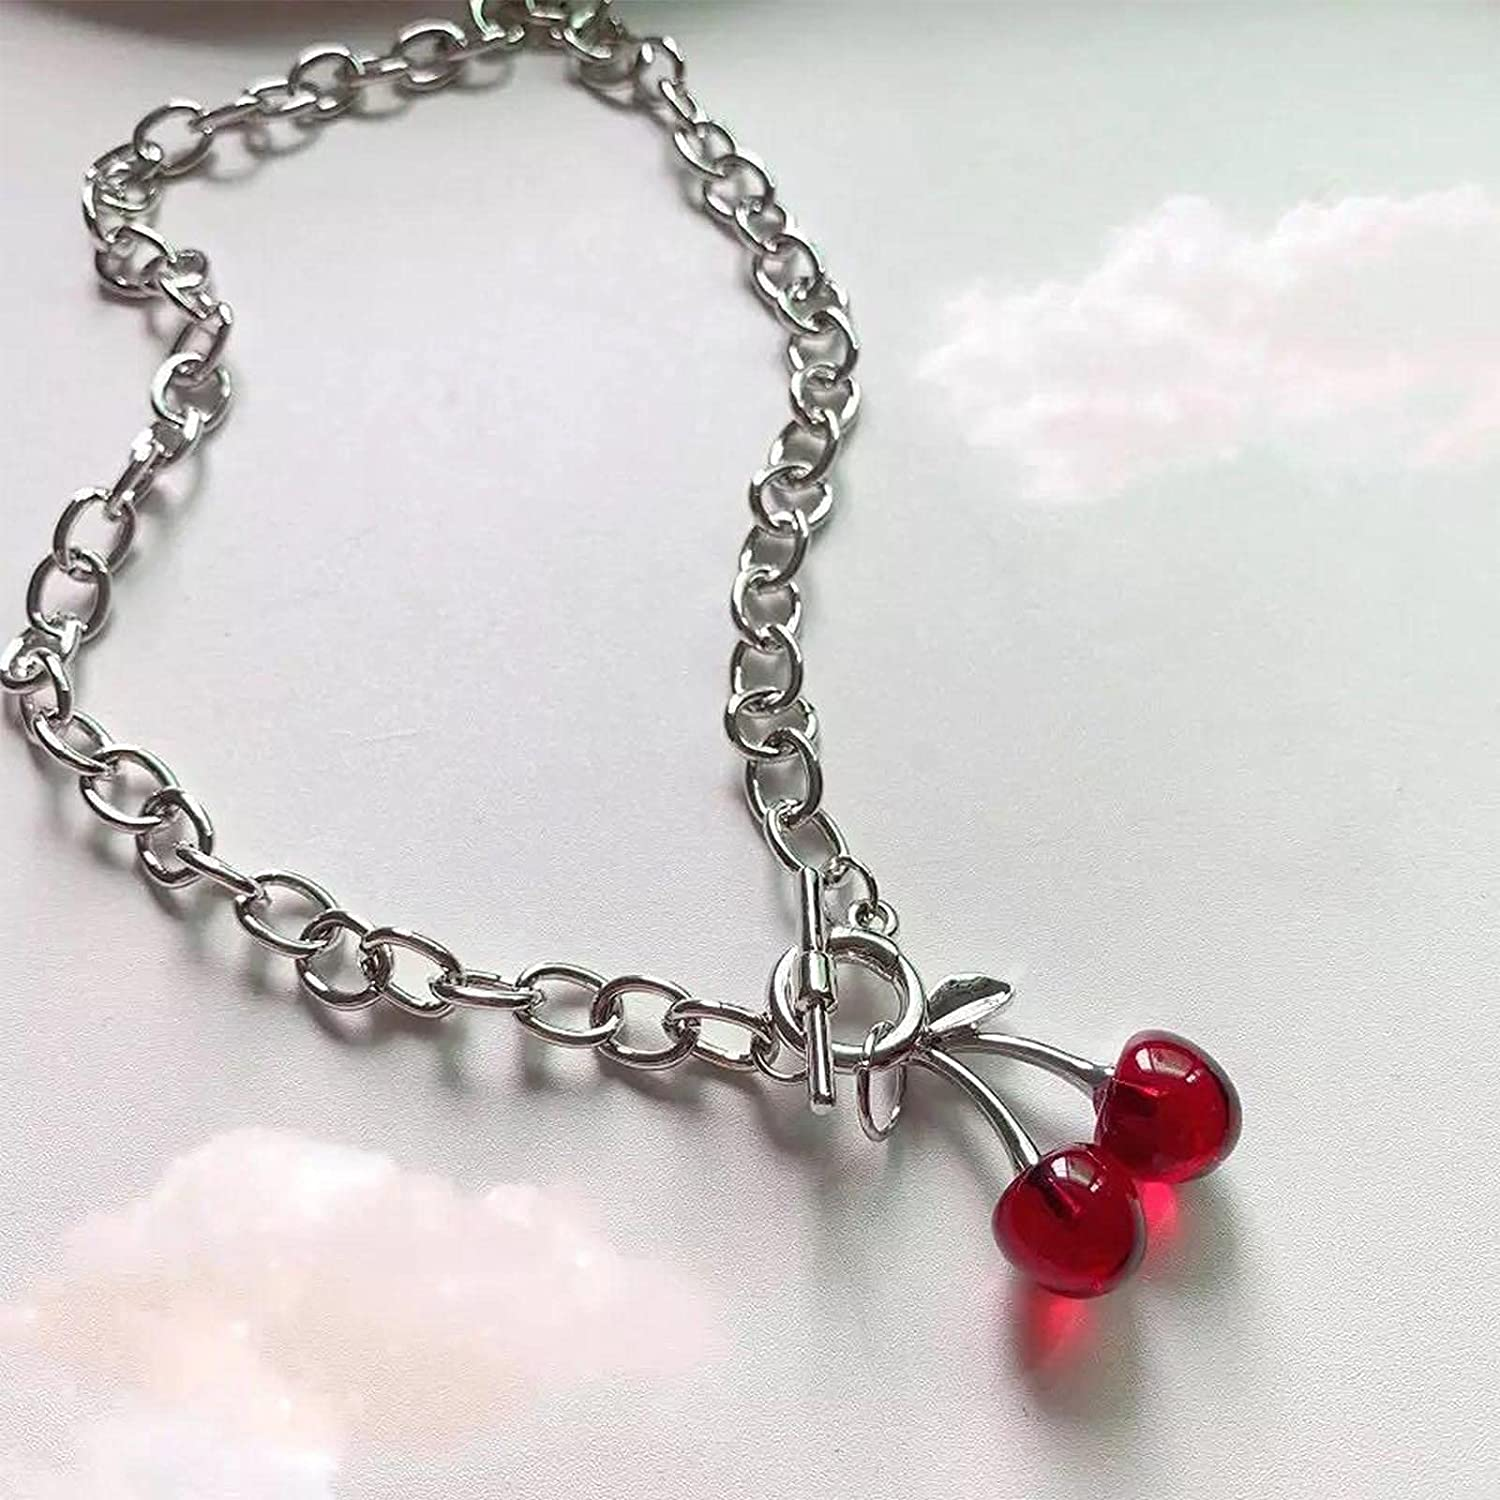 Sttiafay Punk Gothic Necklace Choker Red Cherry Pendant Necklace OT Toggle Clasp Paperclip Link Chain Necklace Jewelry for Women Girls